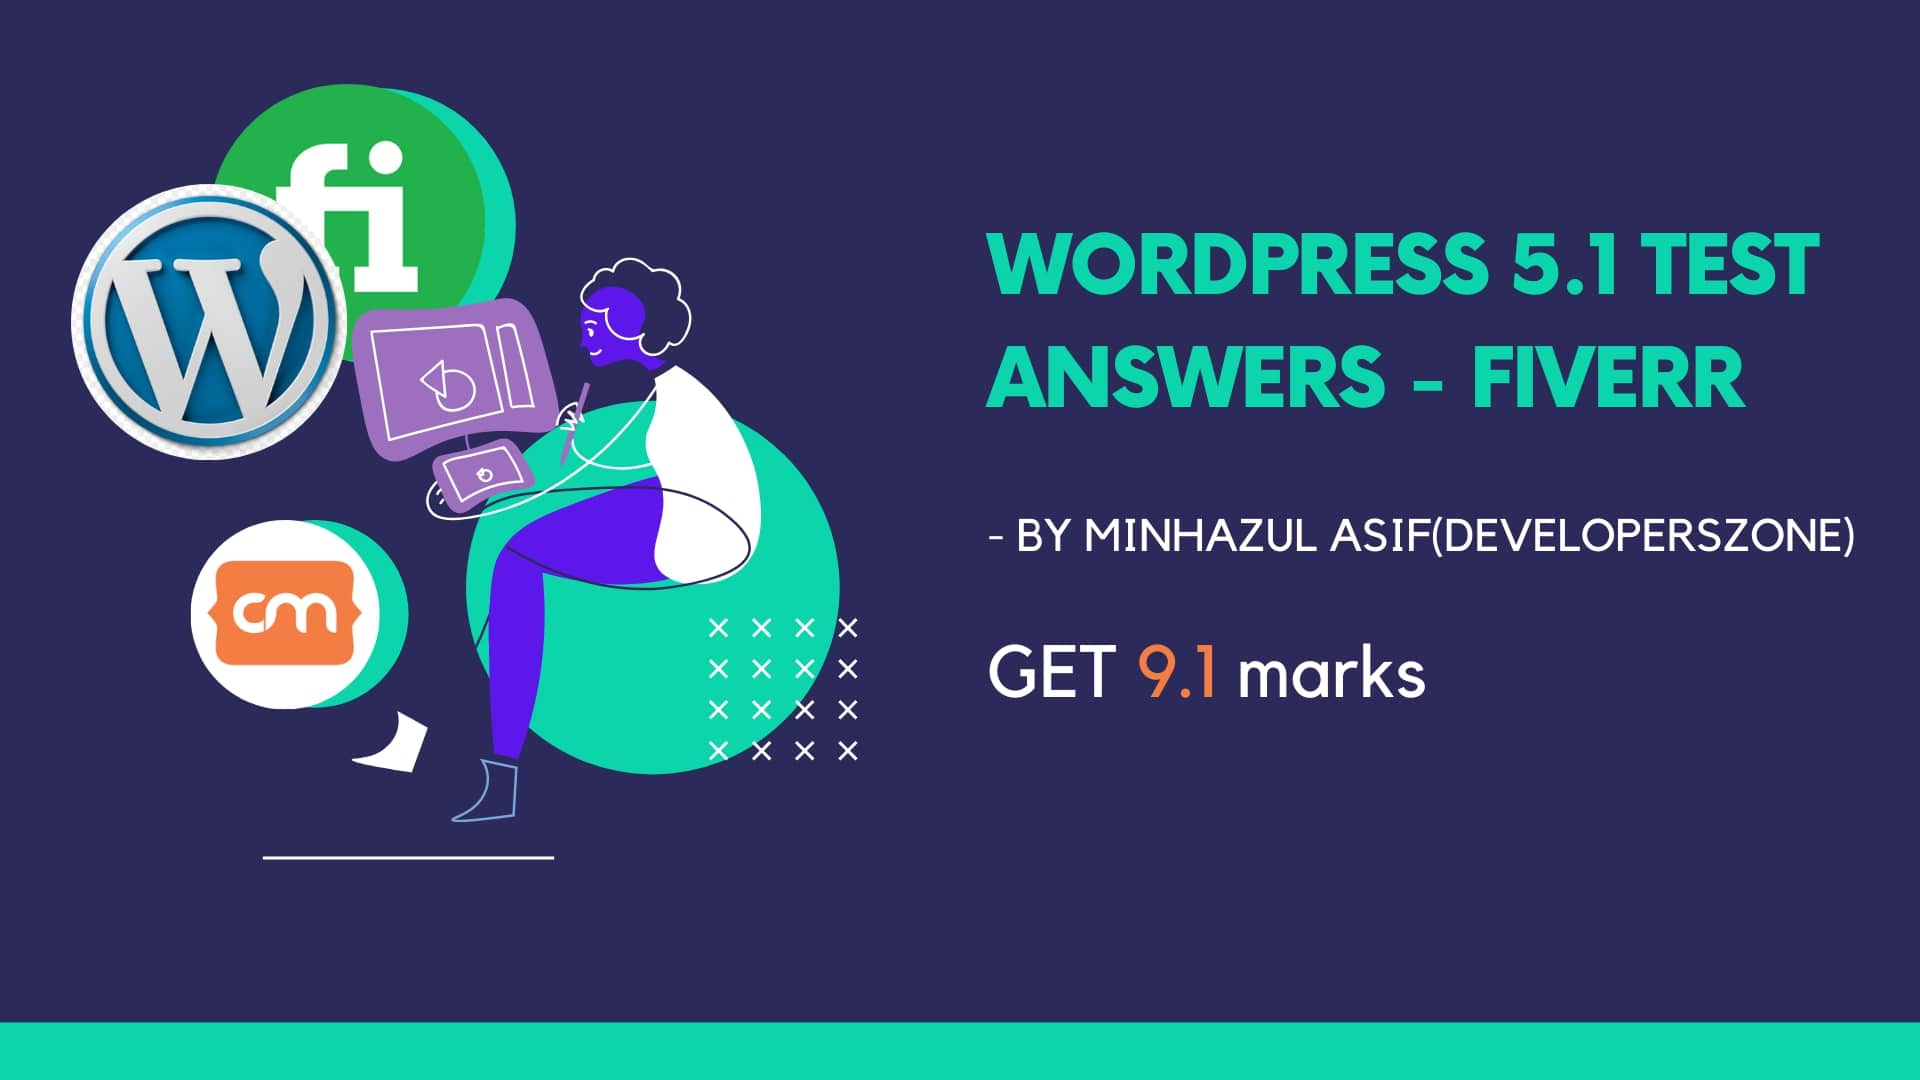 Fiverr WordPress 5.1 test answers : WordPress 5.1 Test ...